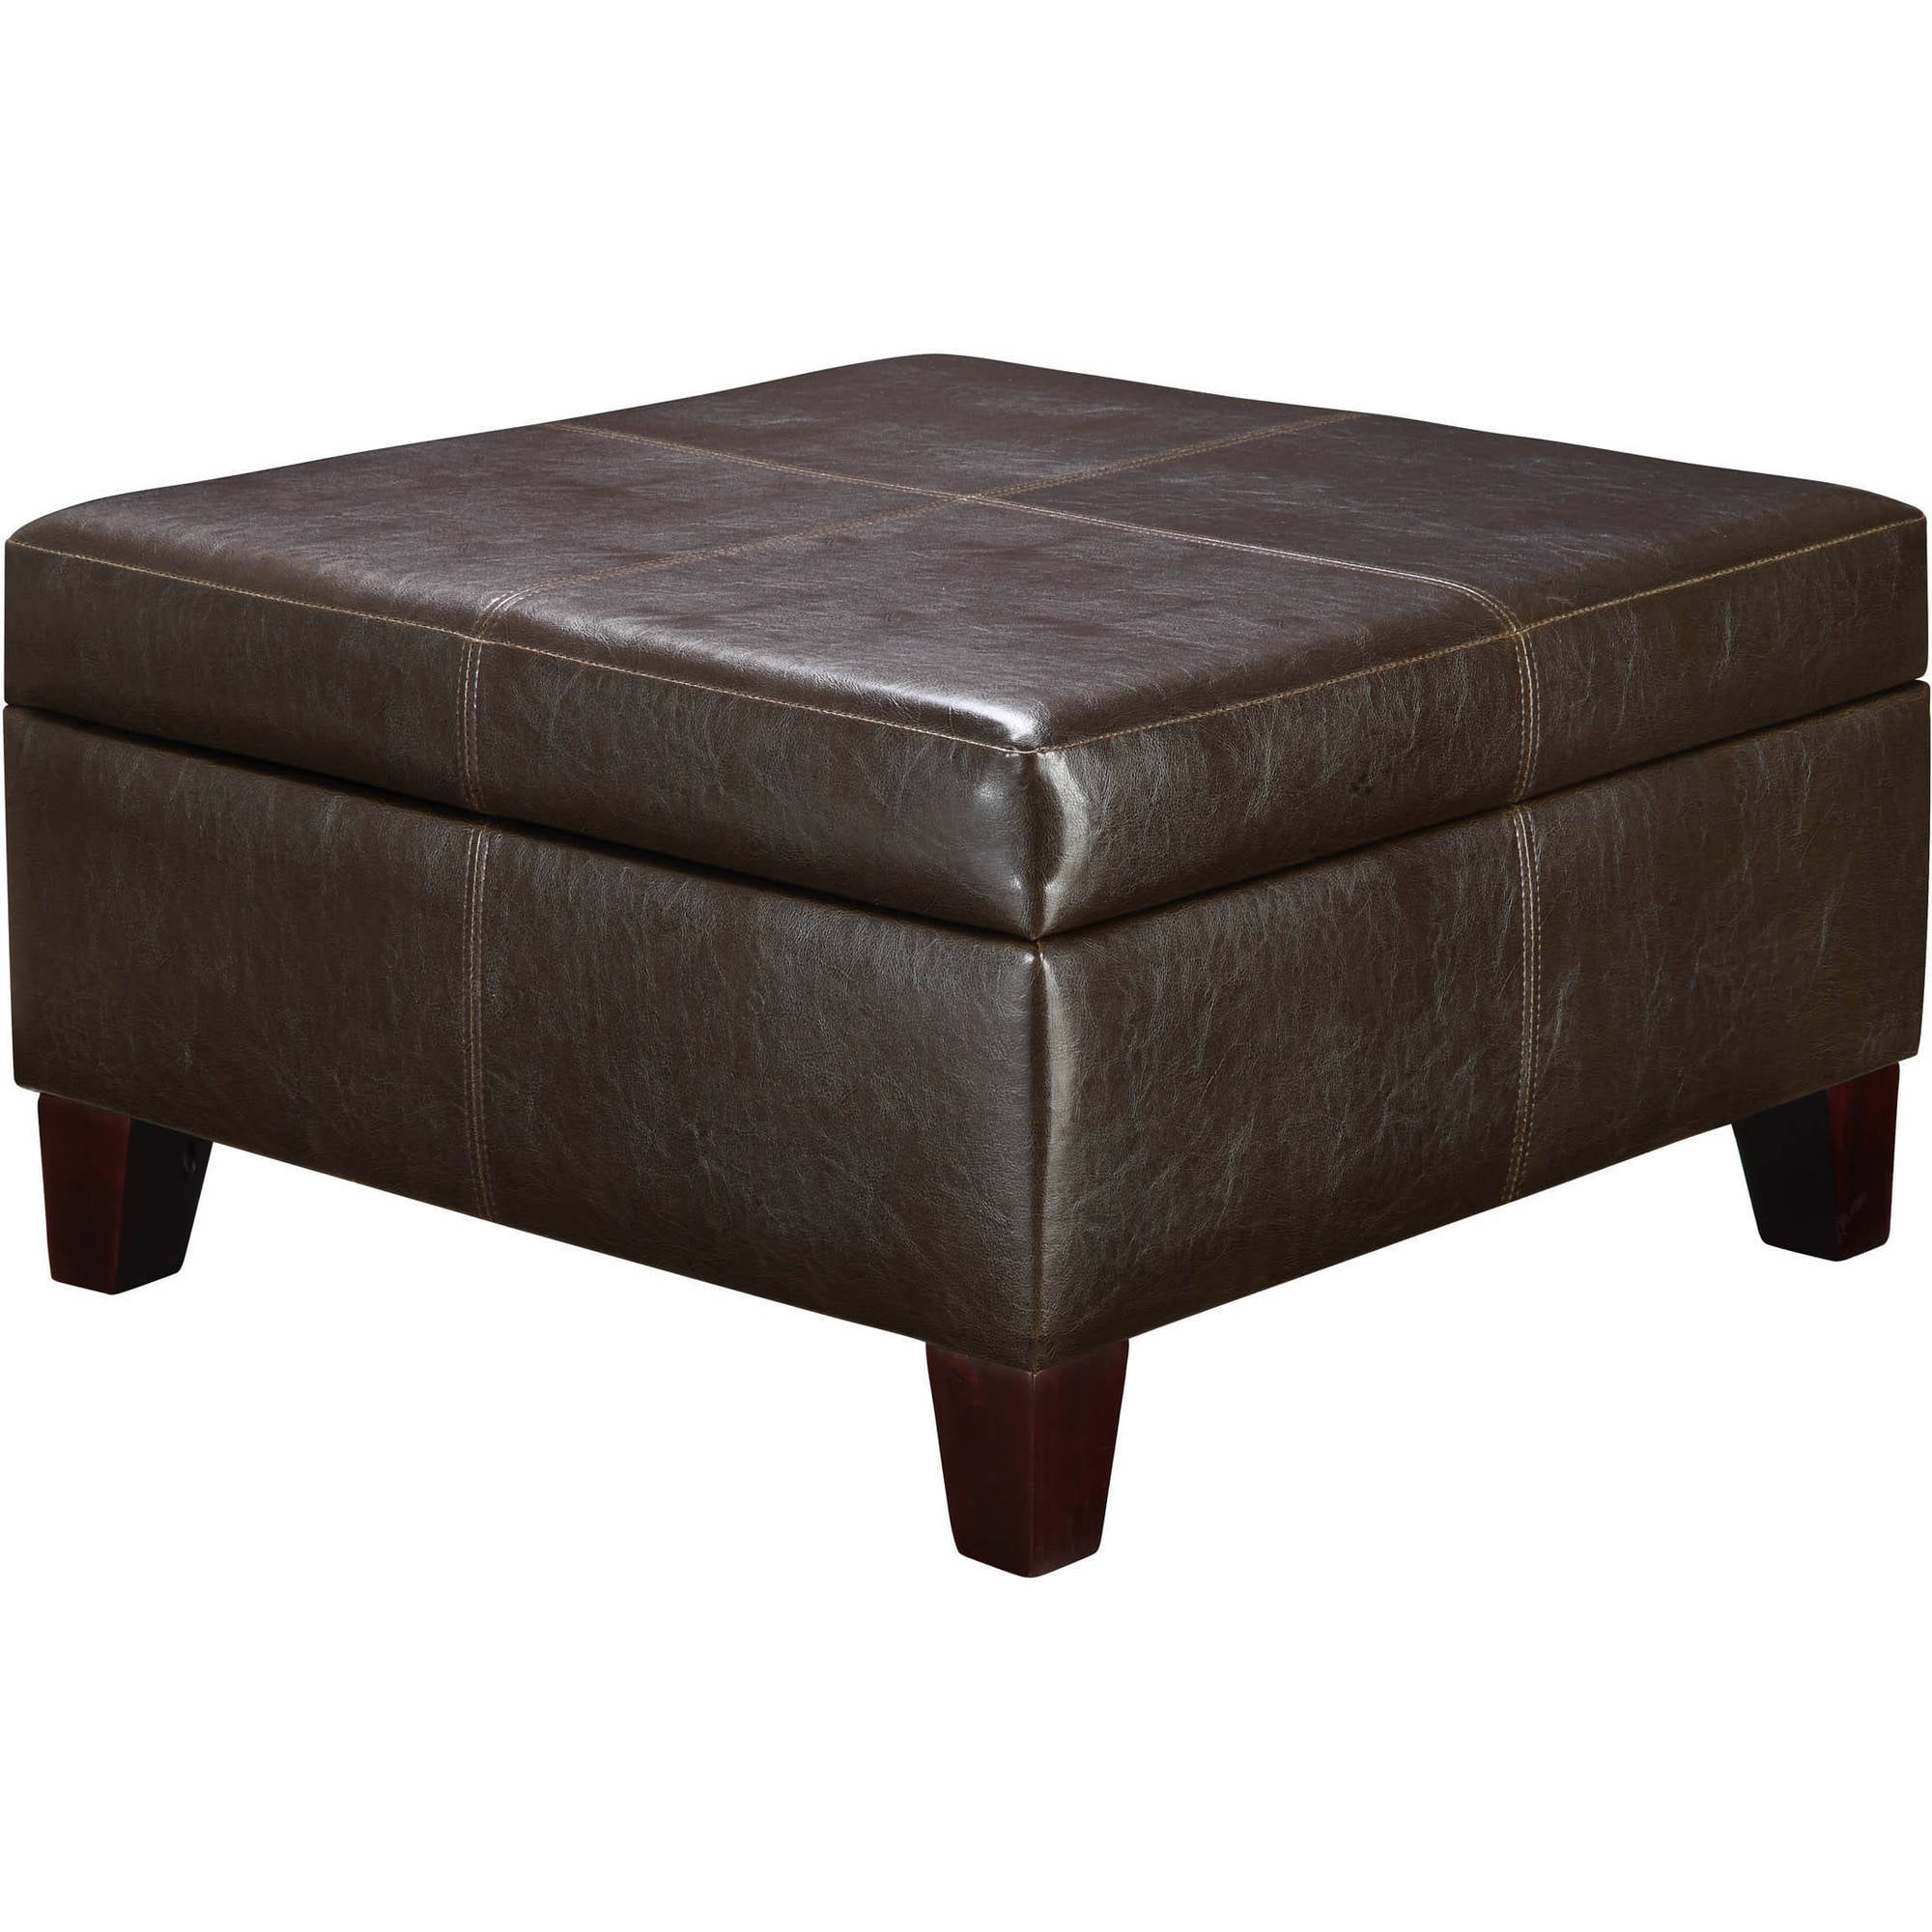 sc 1 st  Walmart & Dorel Living Square Storage Ottoman Multiple Colors - Walmart.com